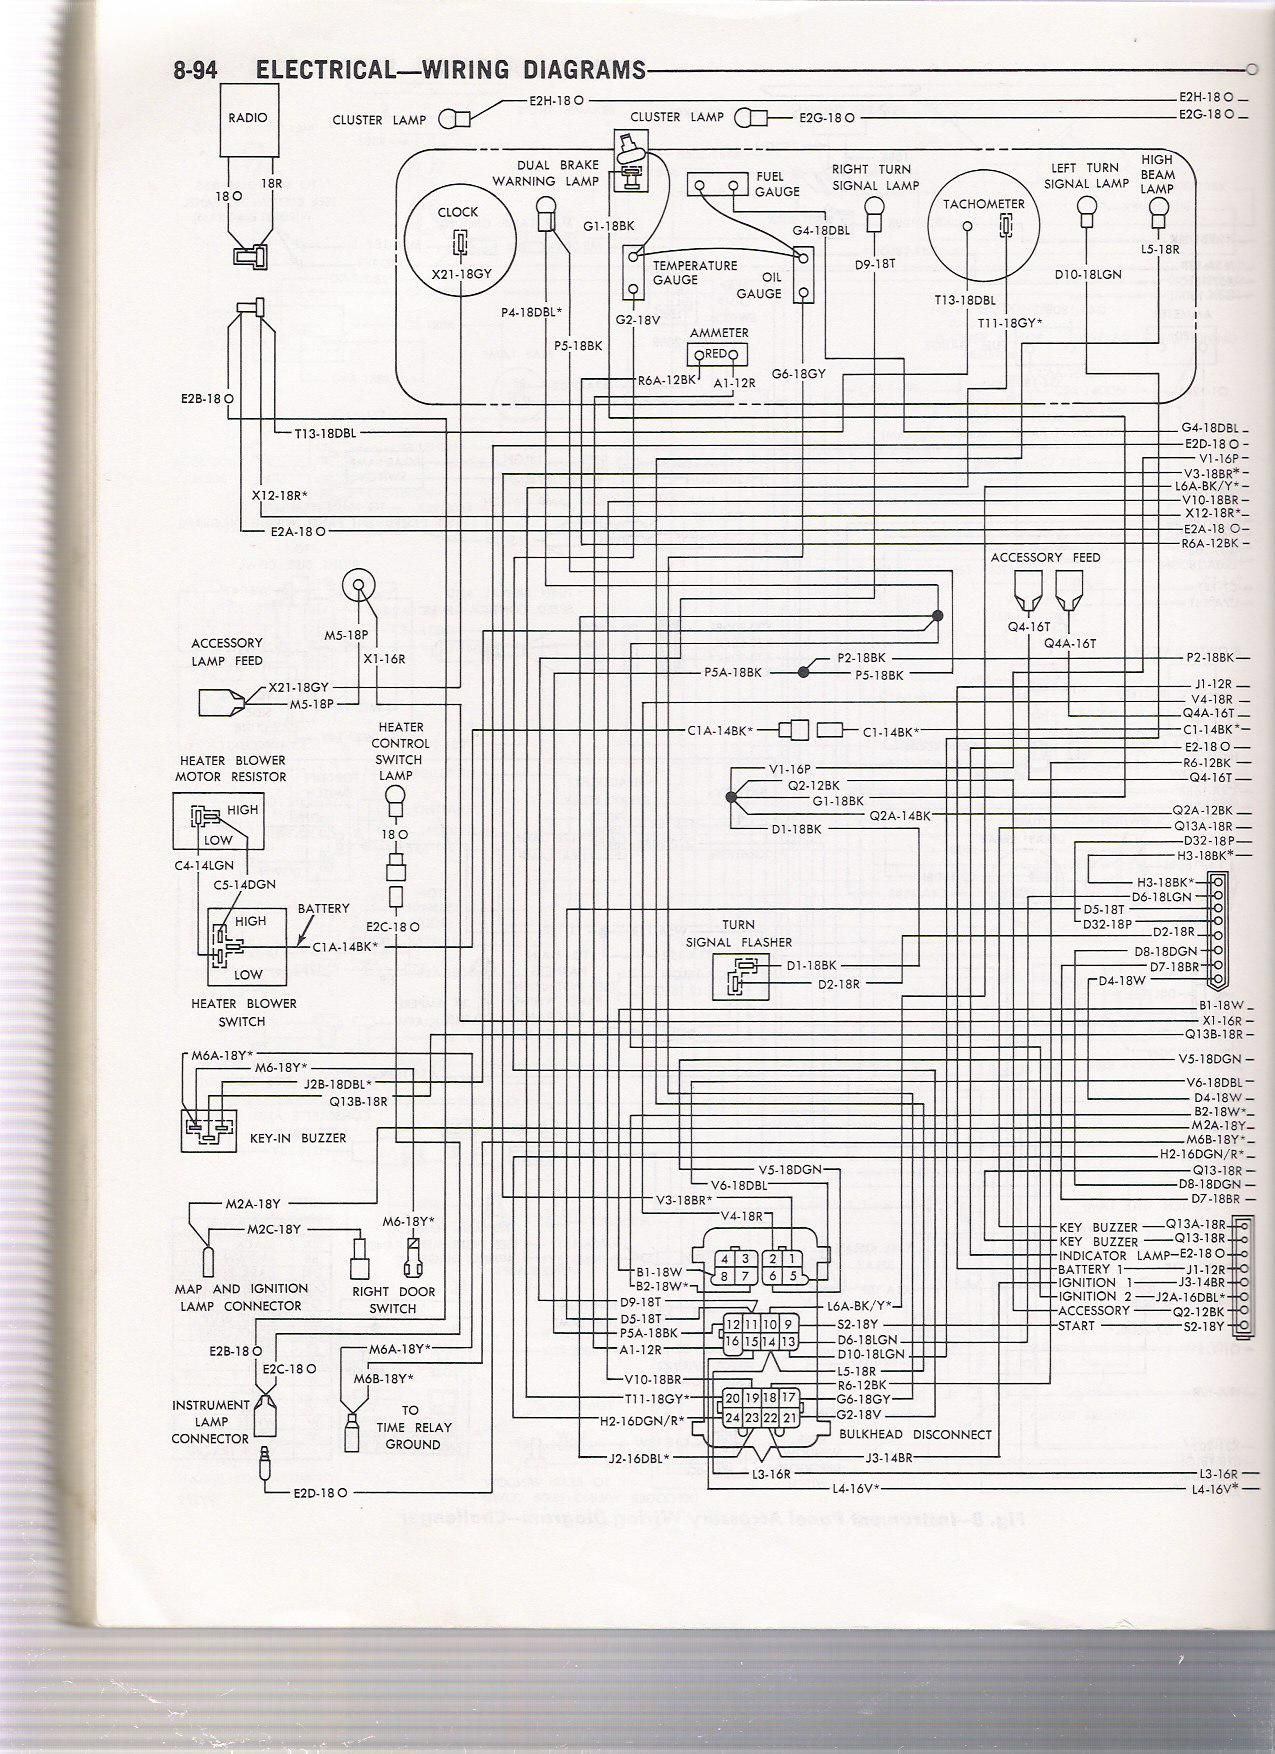 3682004 1970ChallRallye_schematic3 1969 chevelle tachometer wiring diagram schematic wiring resources